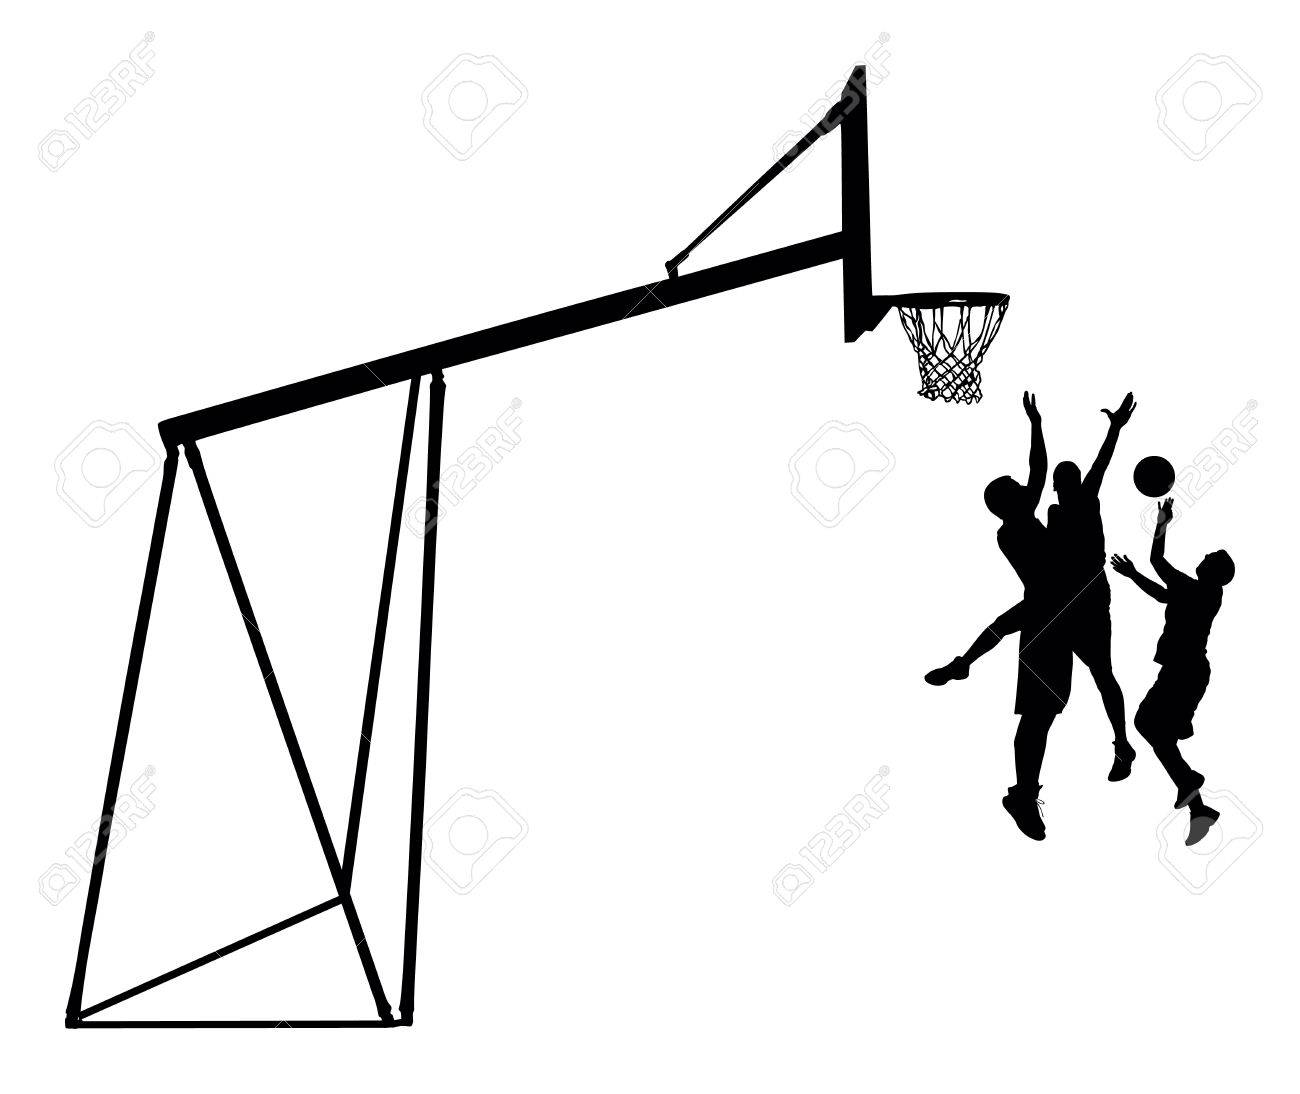 basketball players black silhouette vector illustration isolated on